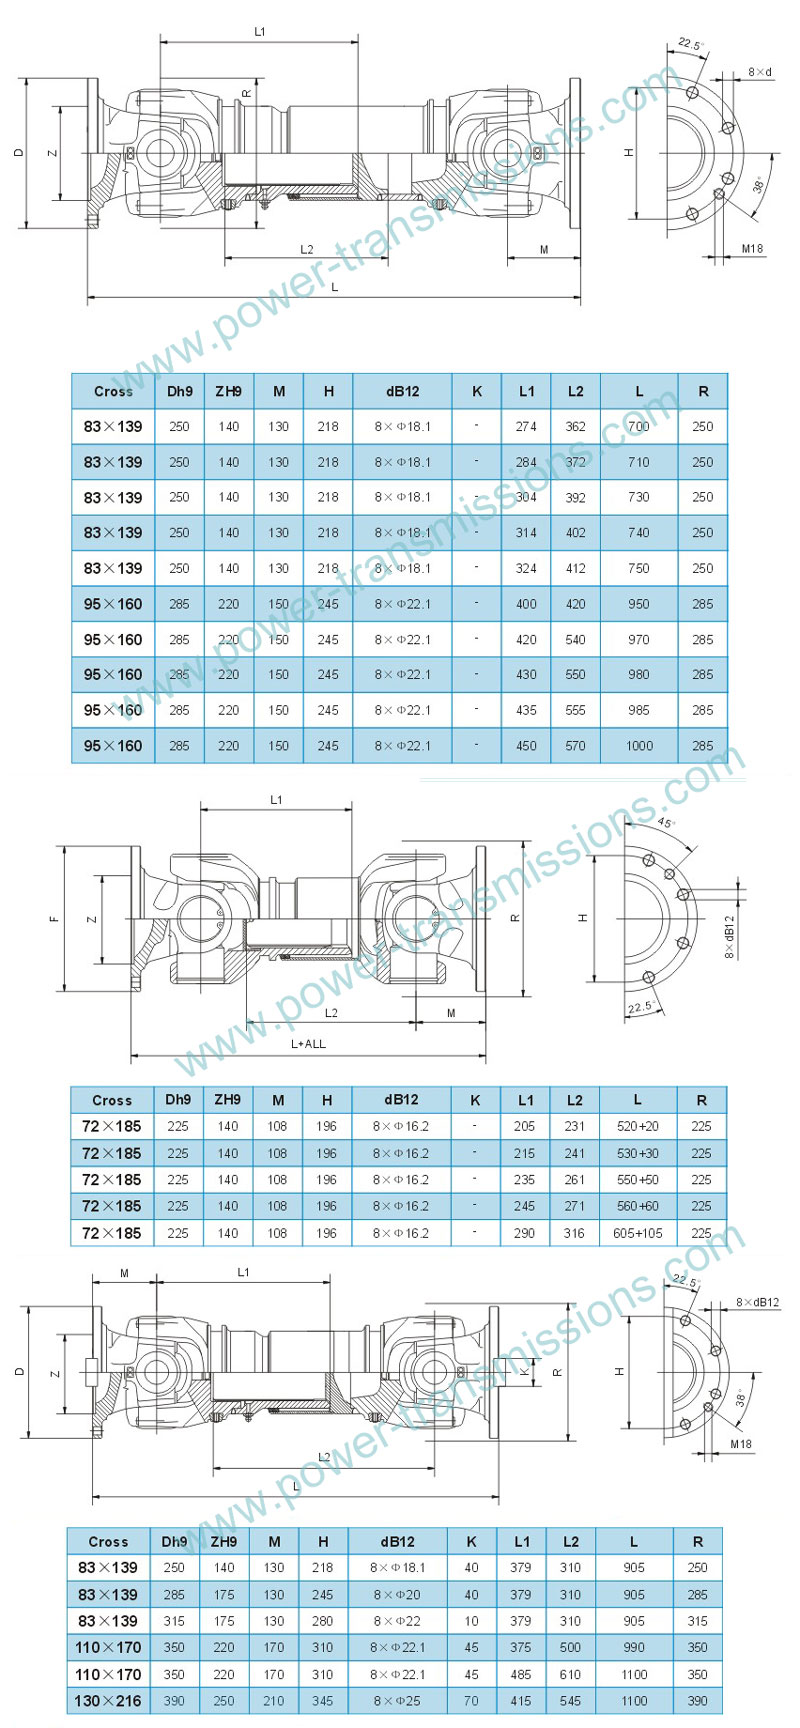 Freightliner Driveline Diagram Trusted Schematics Wiring Coe Heavy Duty Truck Diagrams 1996 Ford Explorer Transmission